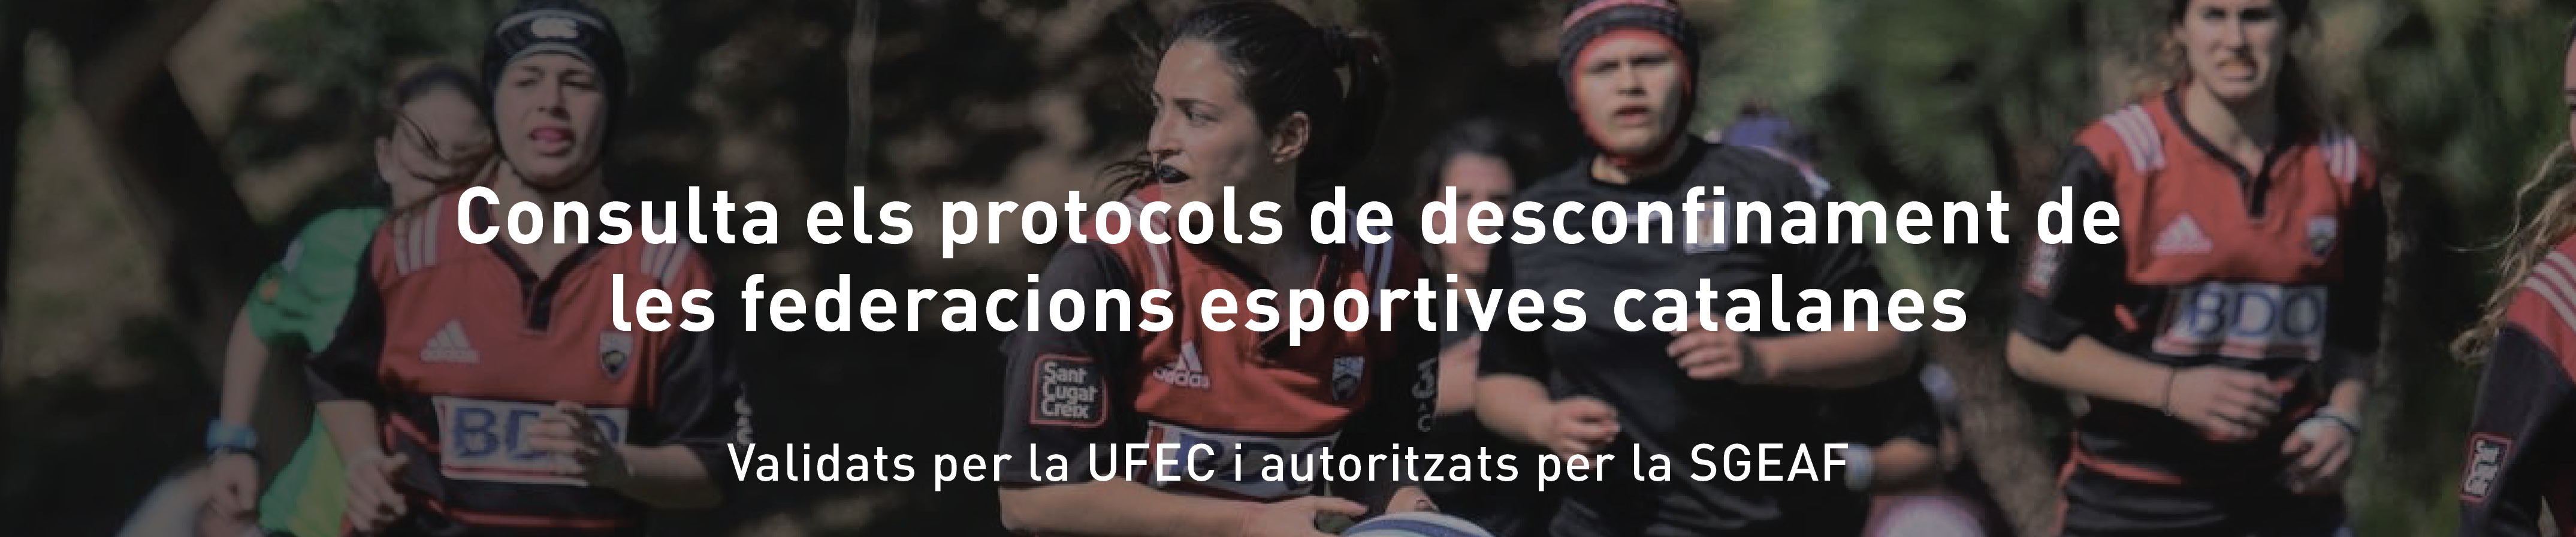 Protocols federacions desconfinament